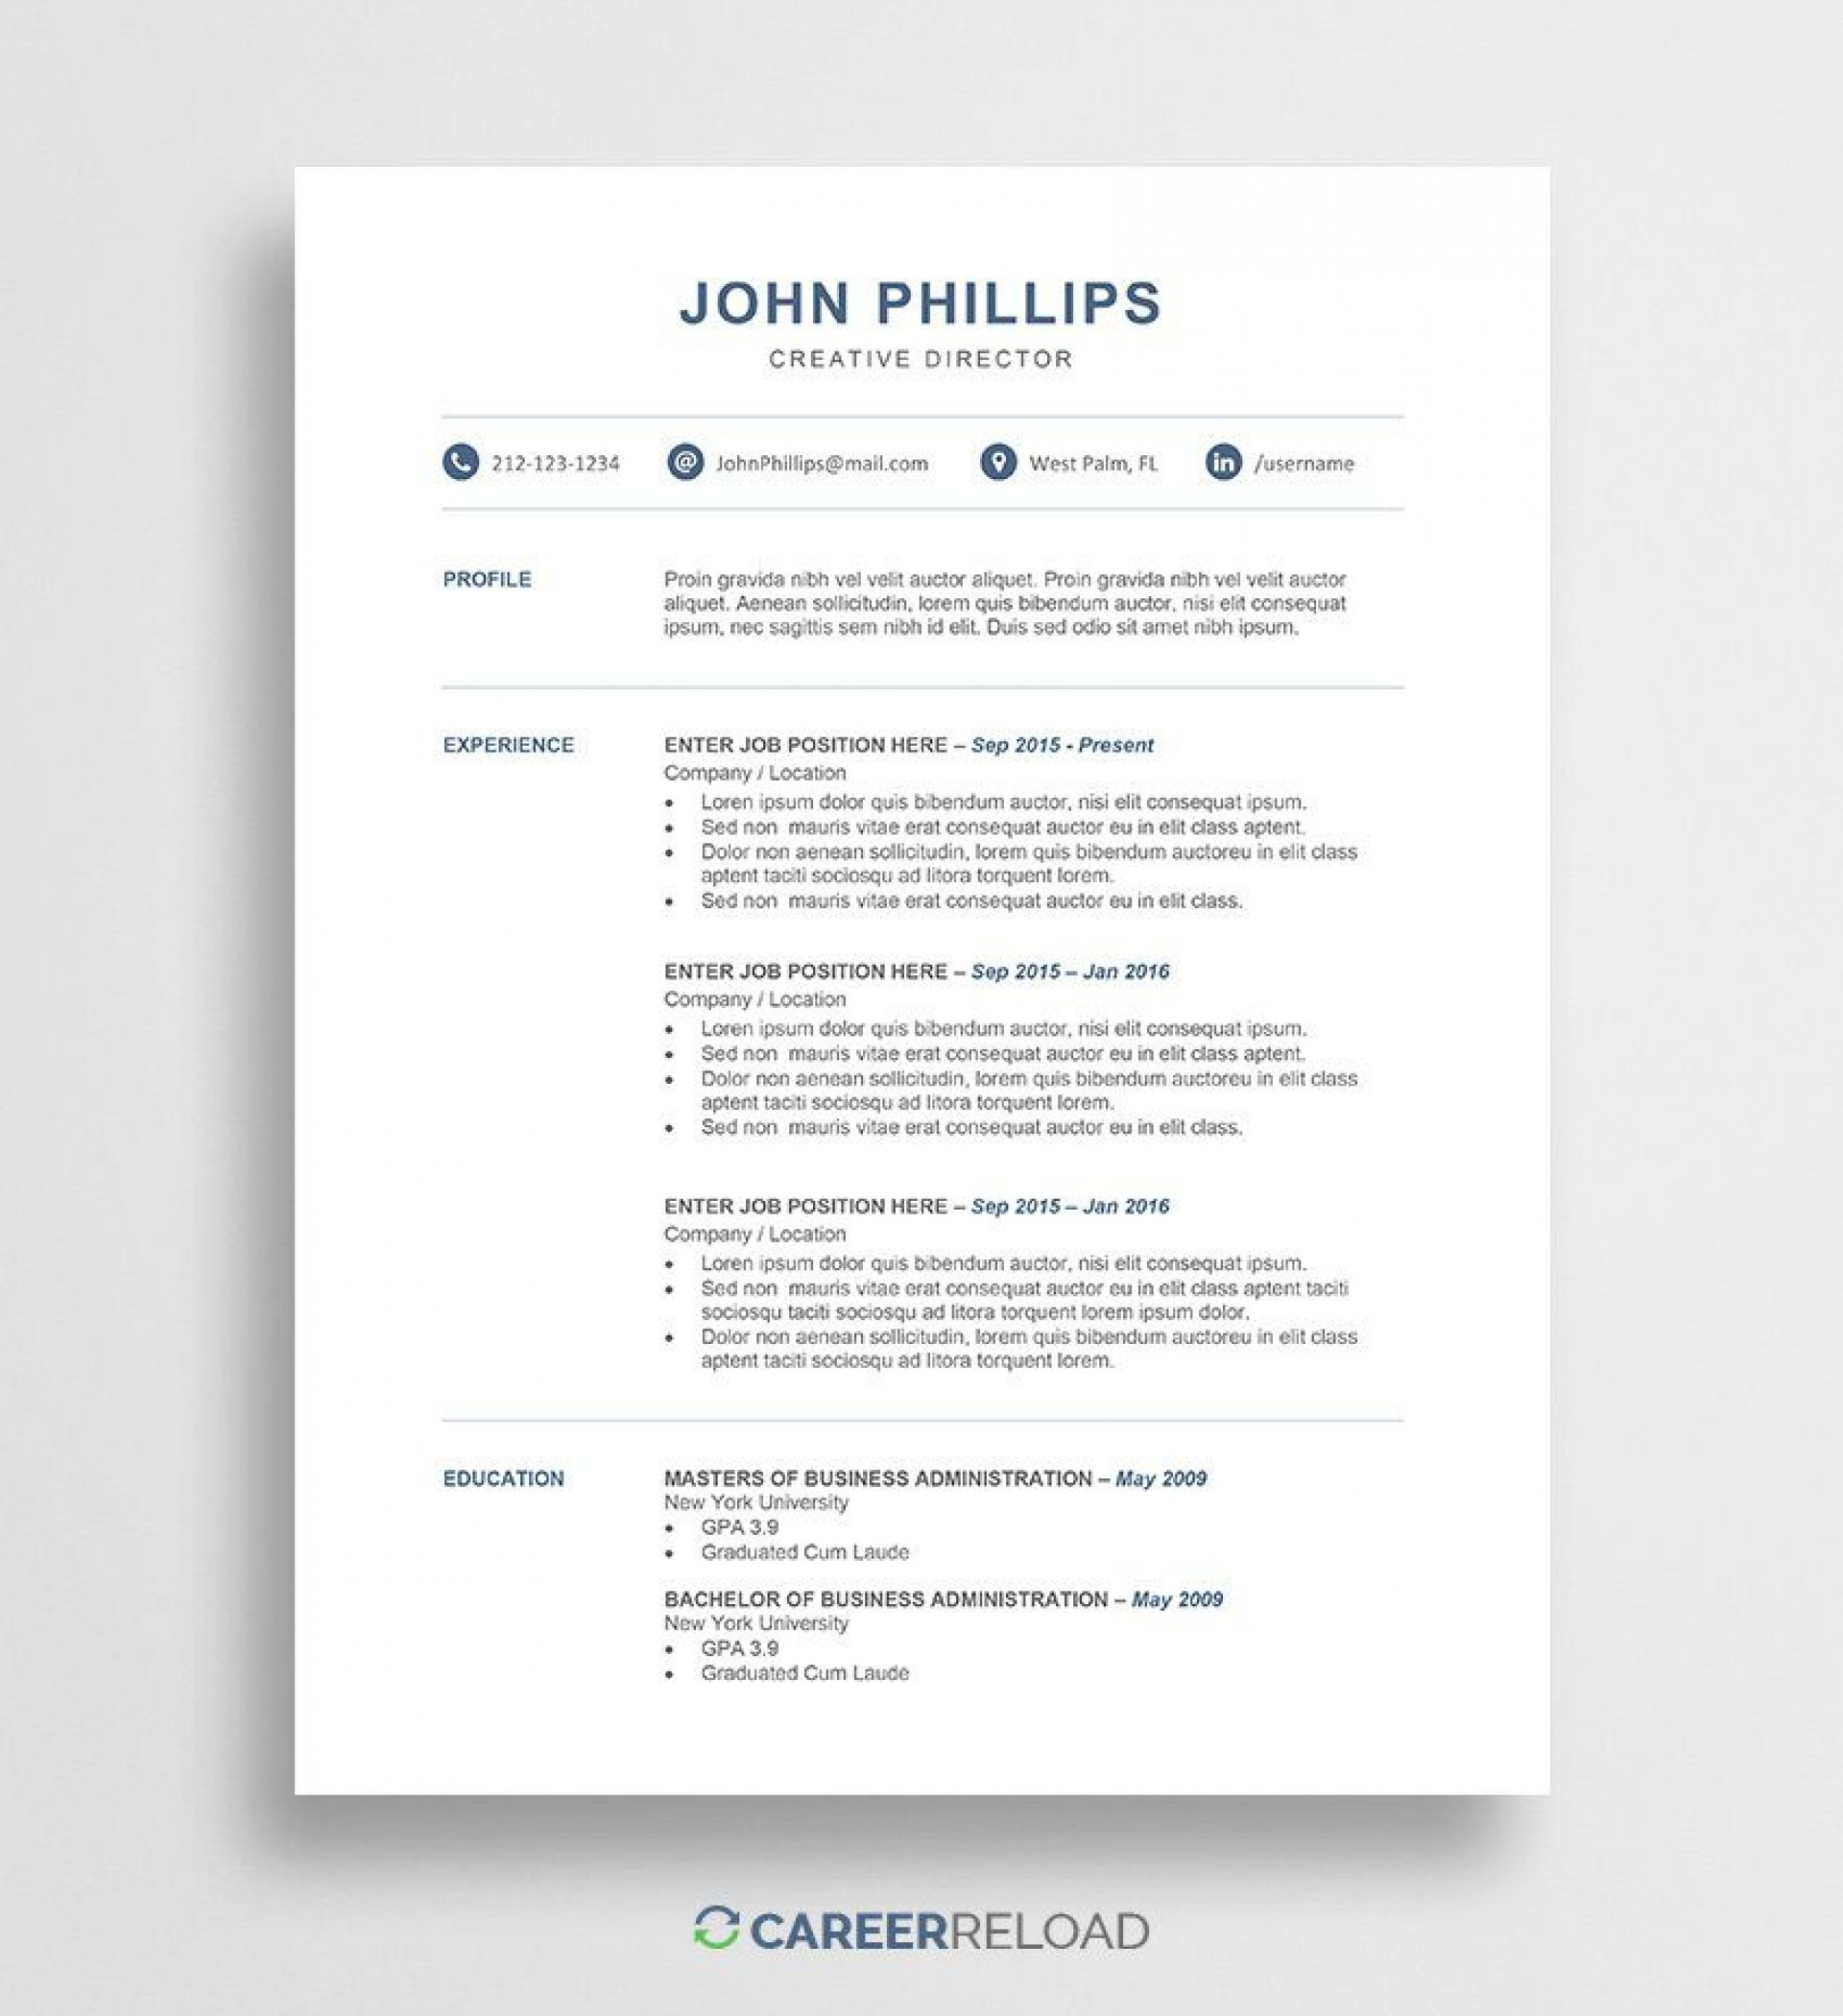 010 Incredible Professional Resume Template Word Free Download Design  Cv 2020 With Photo1920